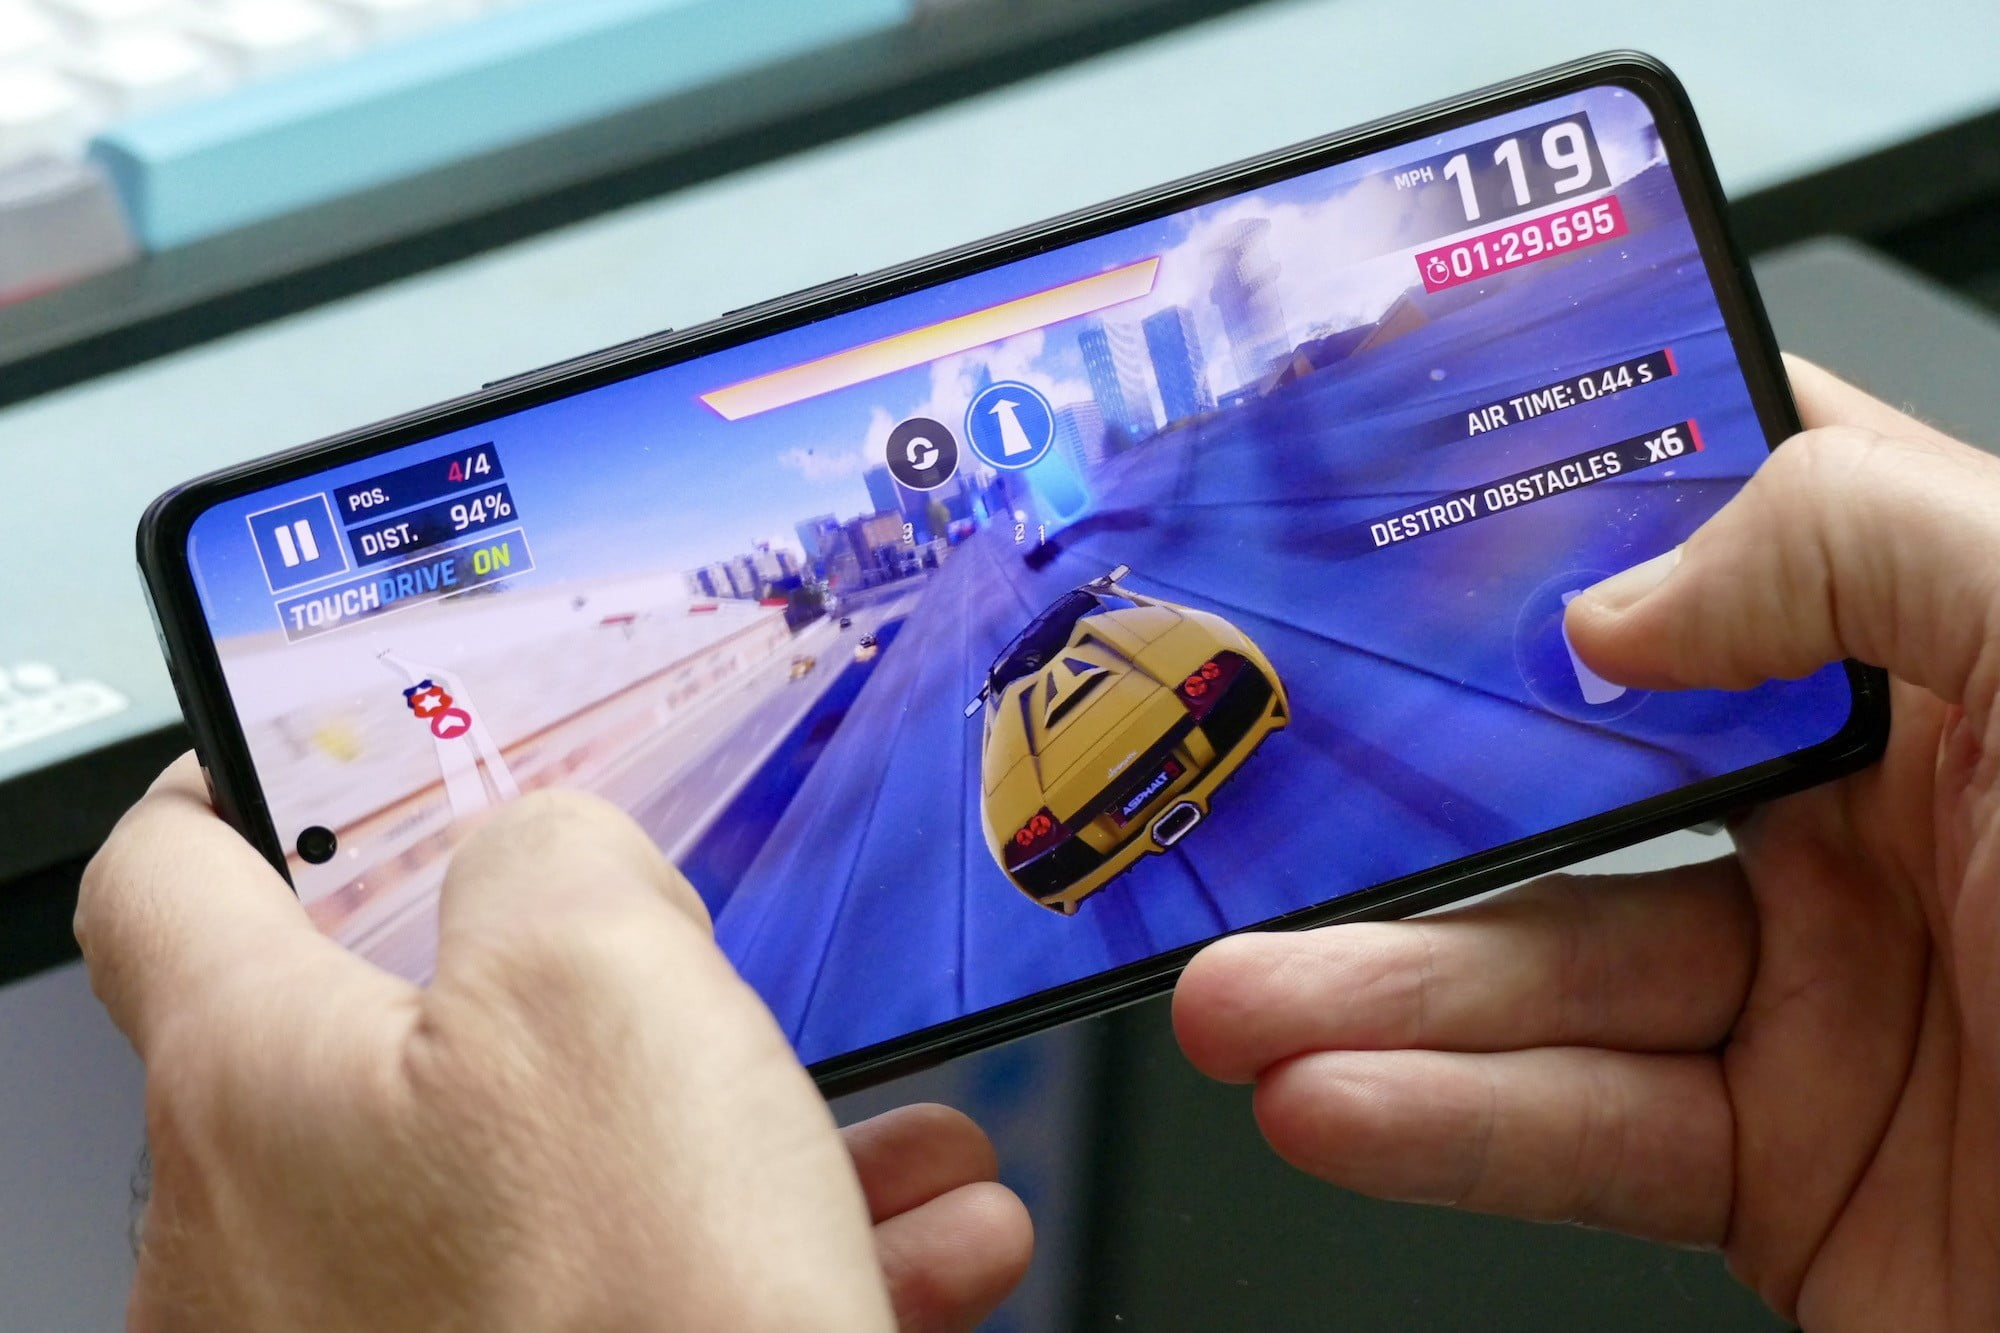 Playing a game on the Xiaomi 11T Pro.